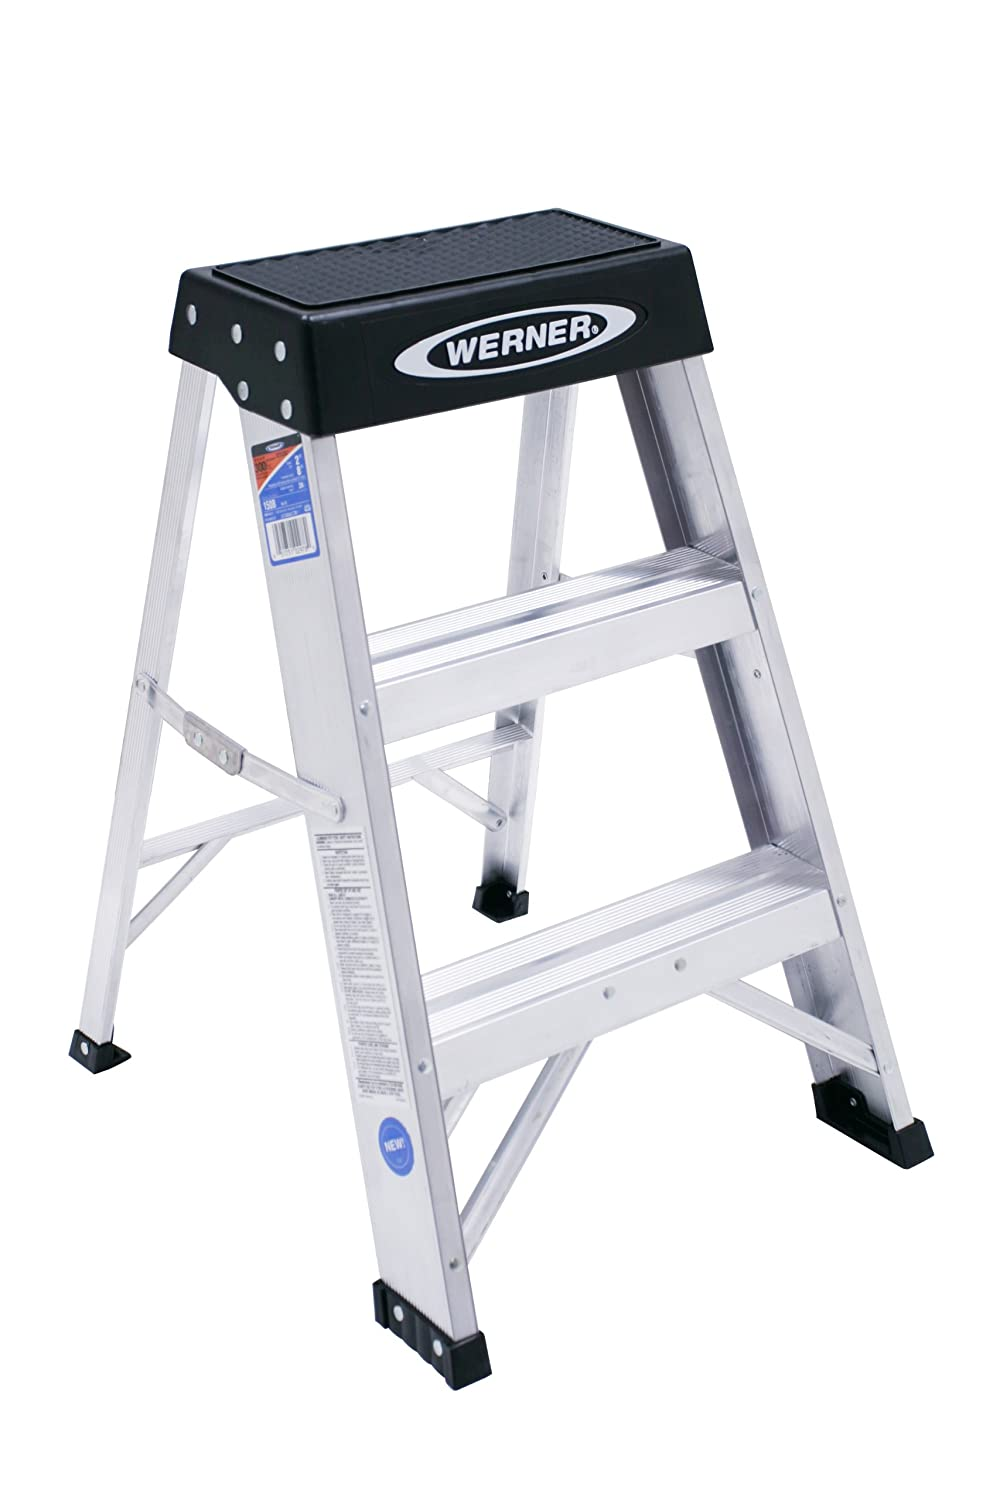 Amazon.com Werner 150B 300-Pound Duty Rating Aluminum Step Stool 2-Foot Home Improvement  sc 1 st  Amazon.com & Amazon.com: Werner 150B 300-Pound Duty Rating Aluminum Step Stool ... islam-shia.org